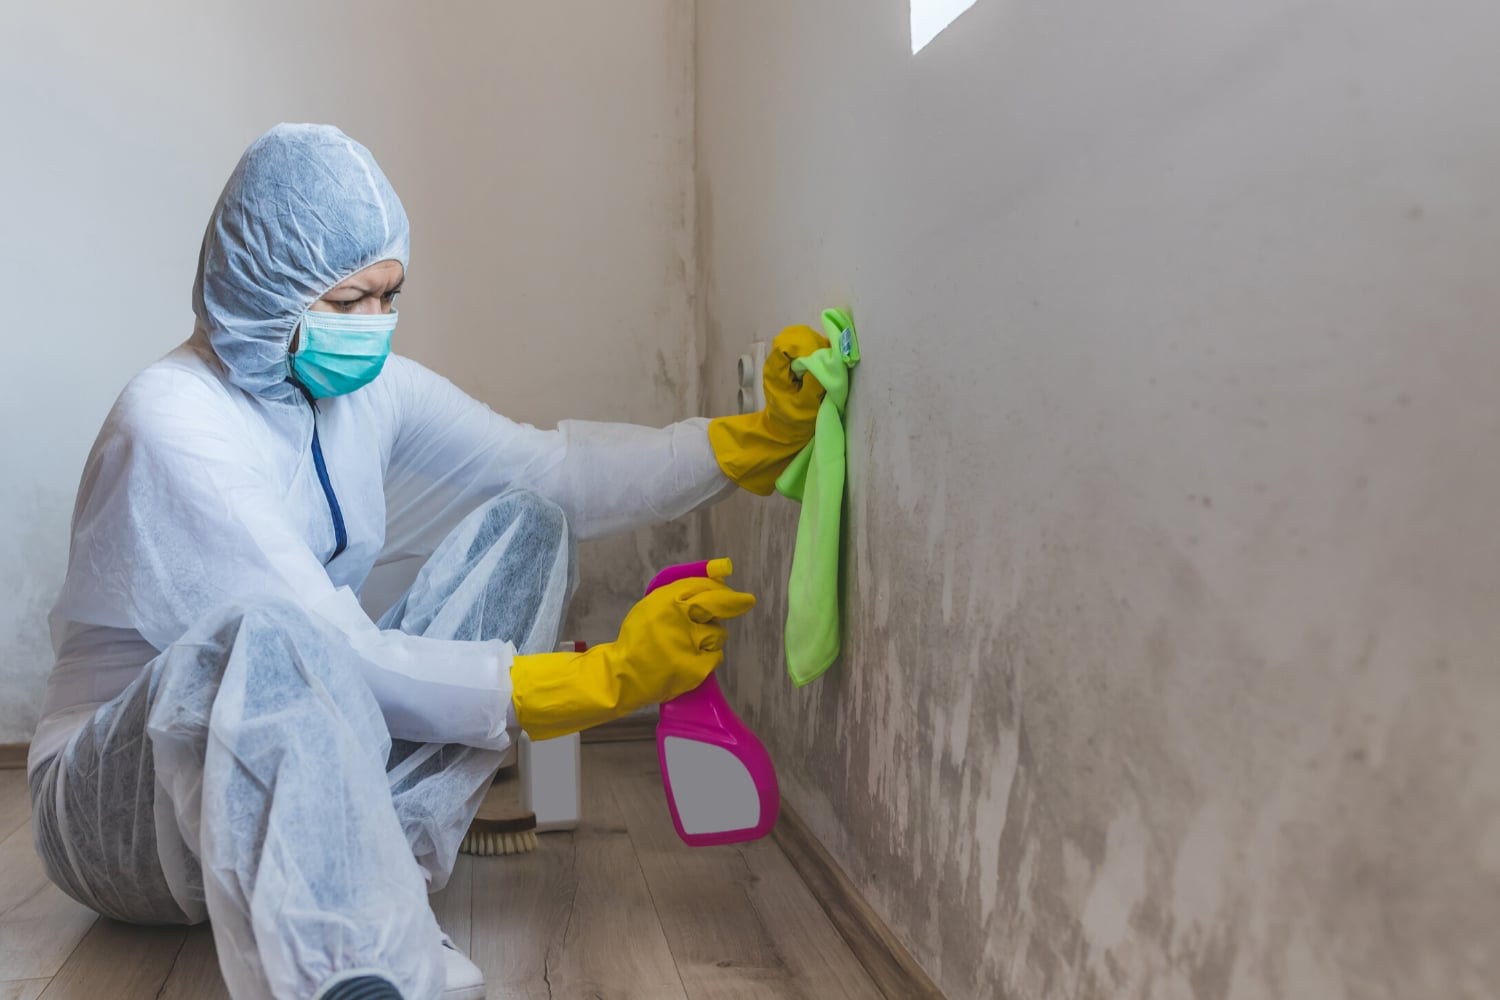 remove mold safely